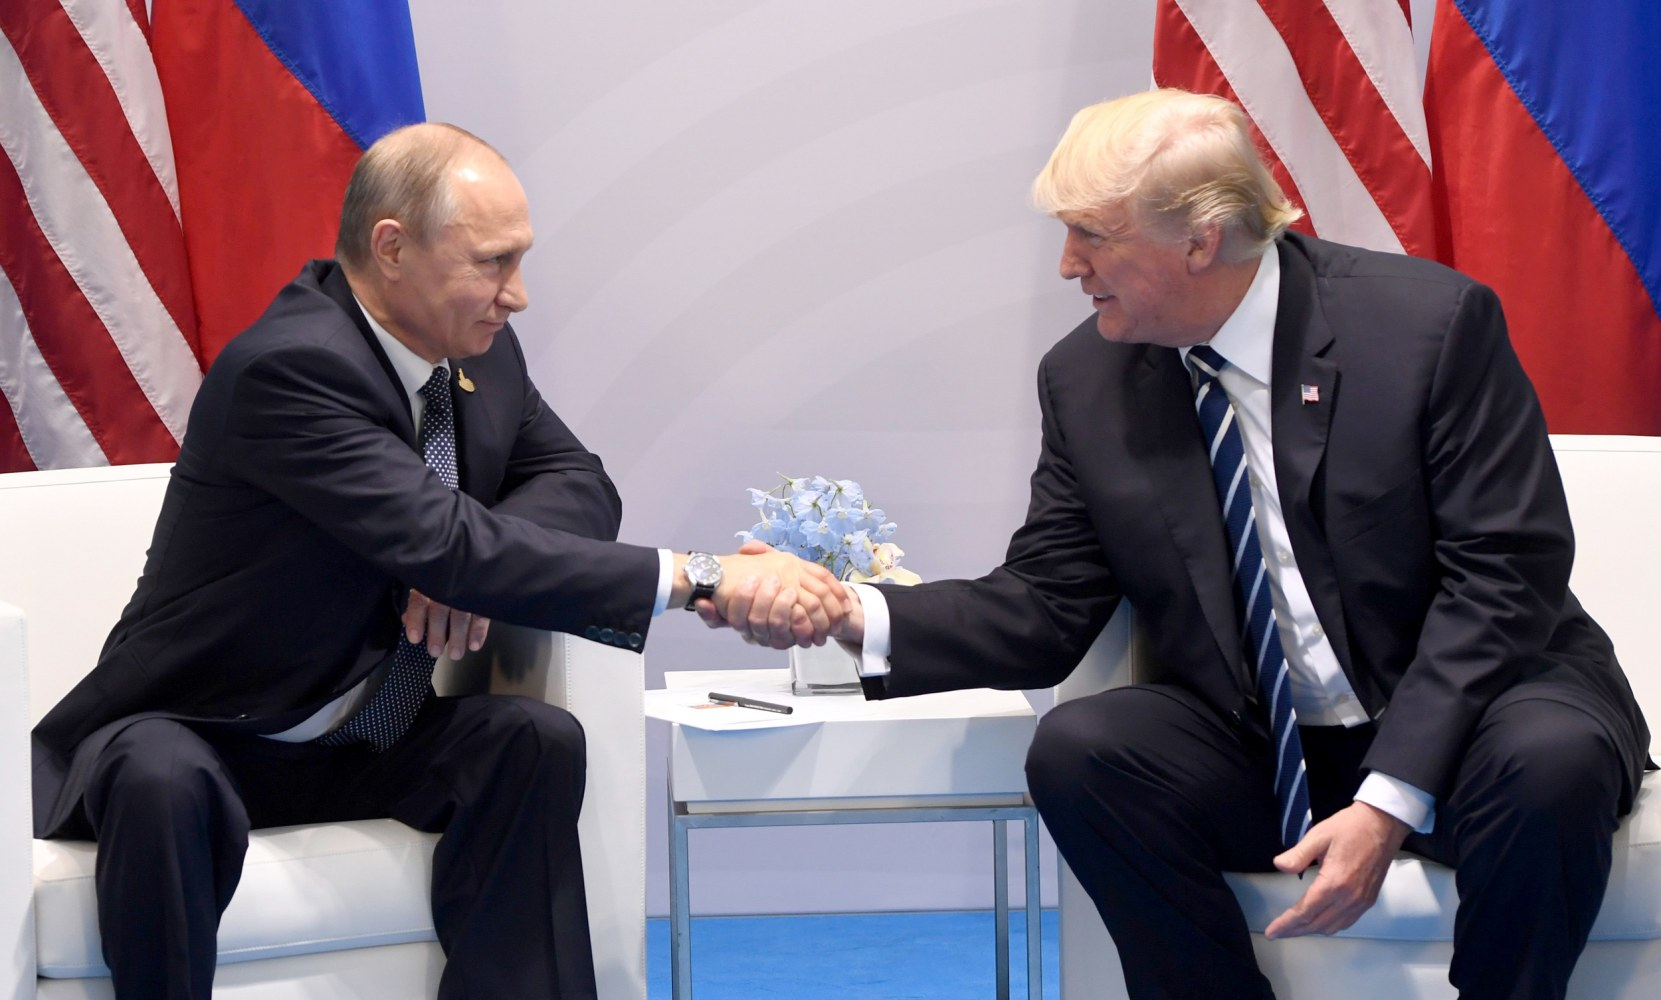 Image result for Images of Putin and Trump on July 7, 2017